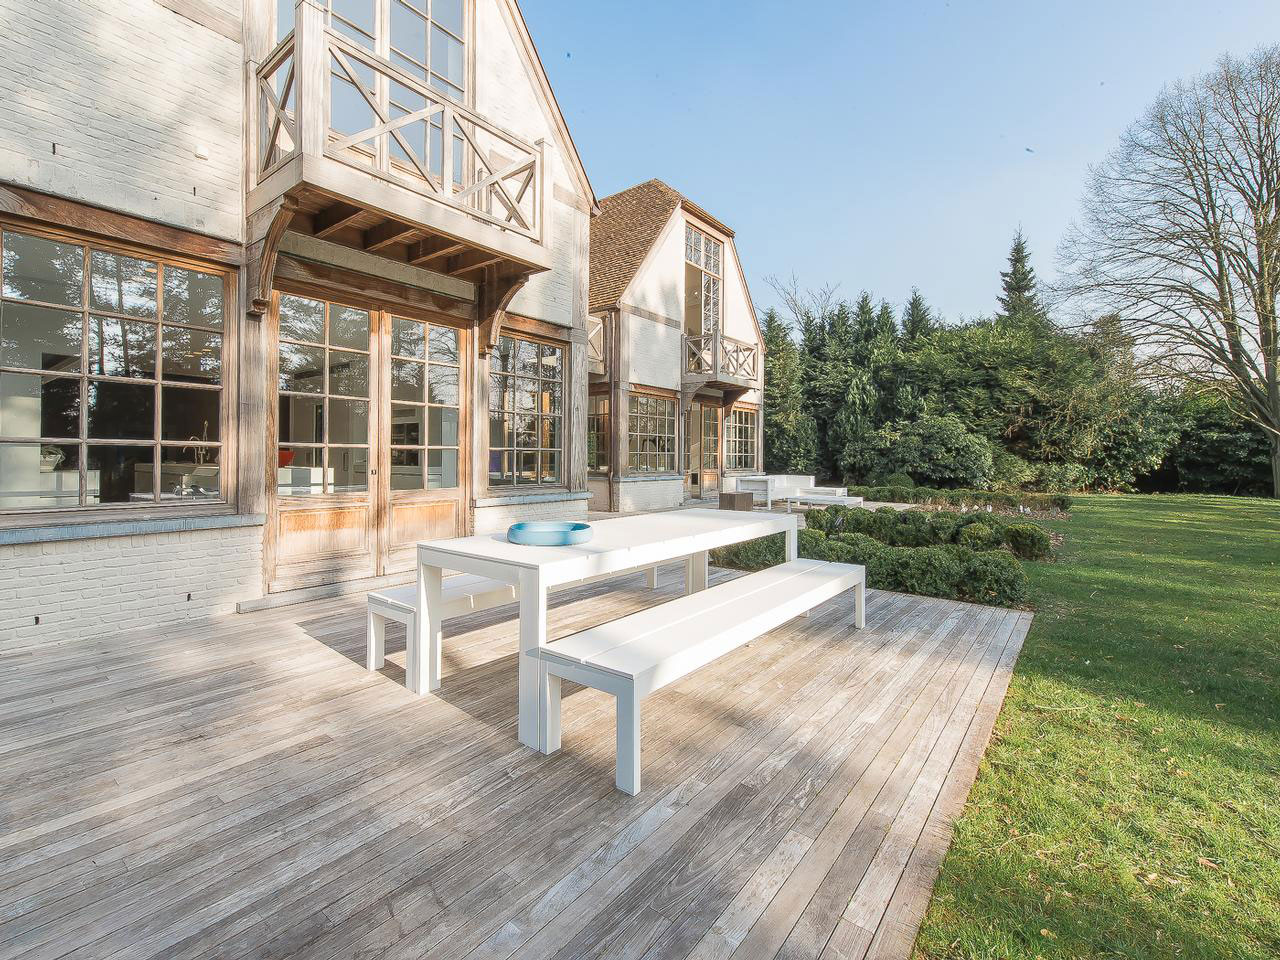 Terrace, Wood Deck, Outdoor Dining Furniture, House Renovation in Sint-Genesius-Rode, Belgium